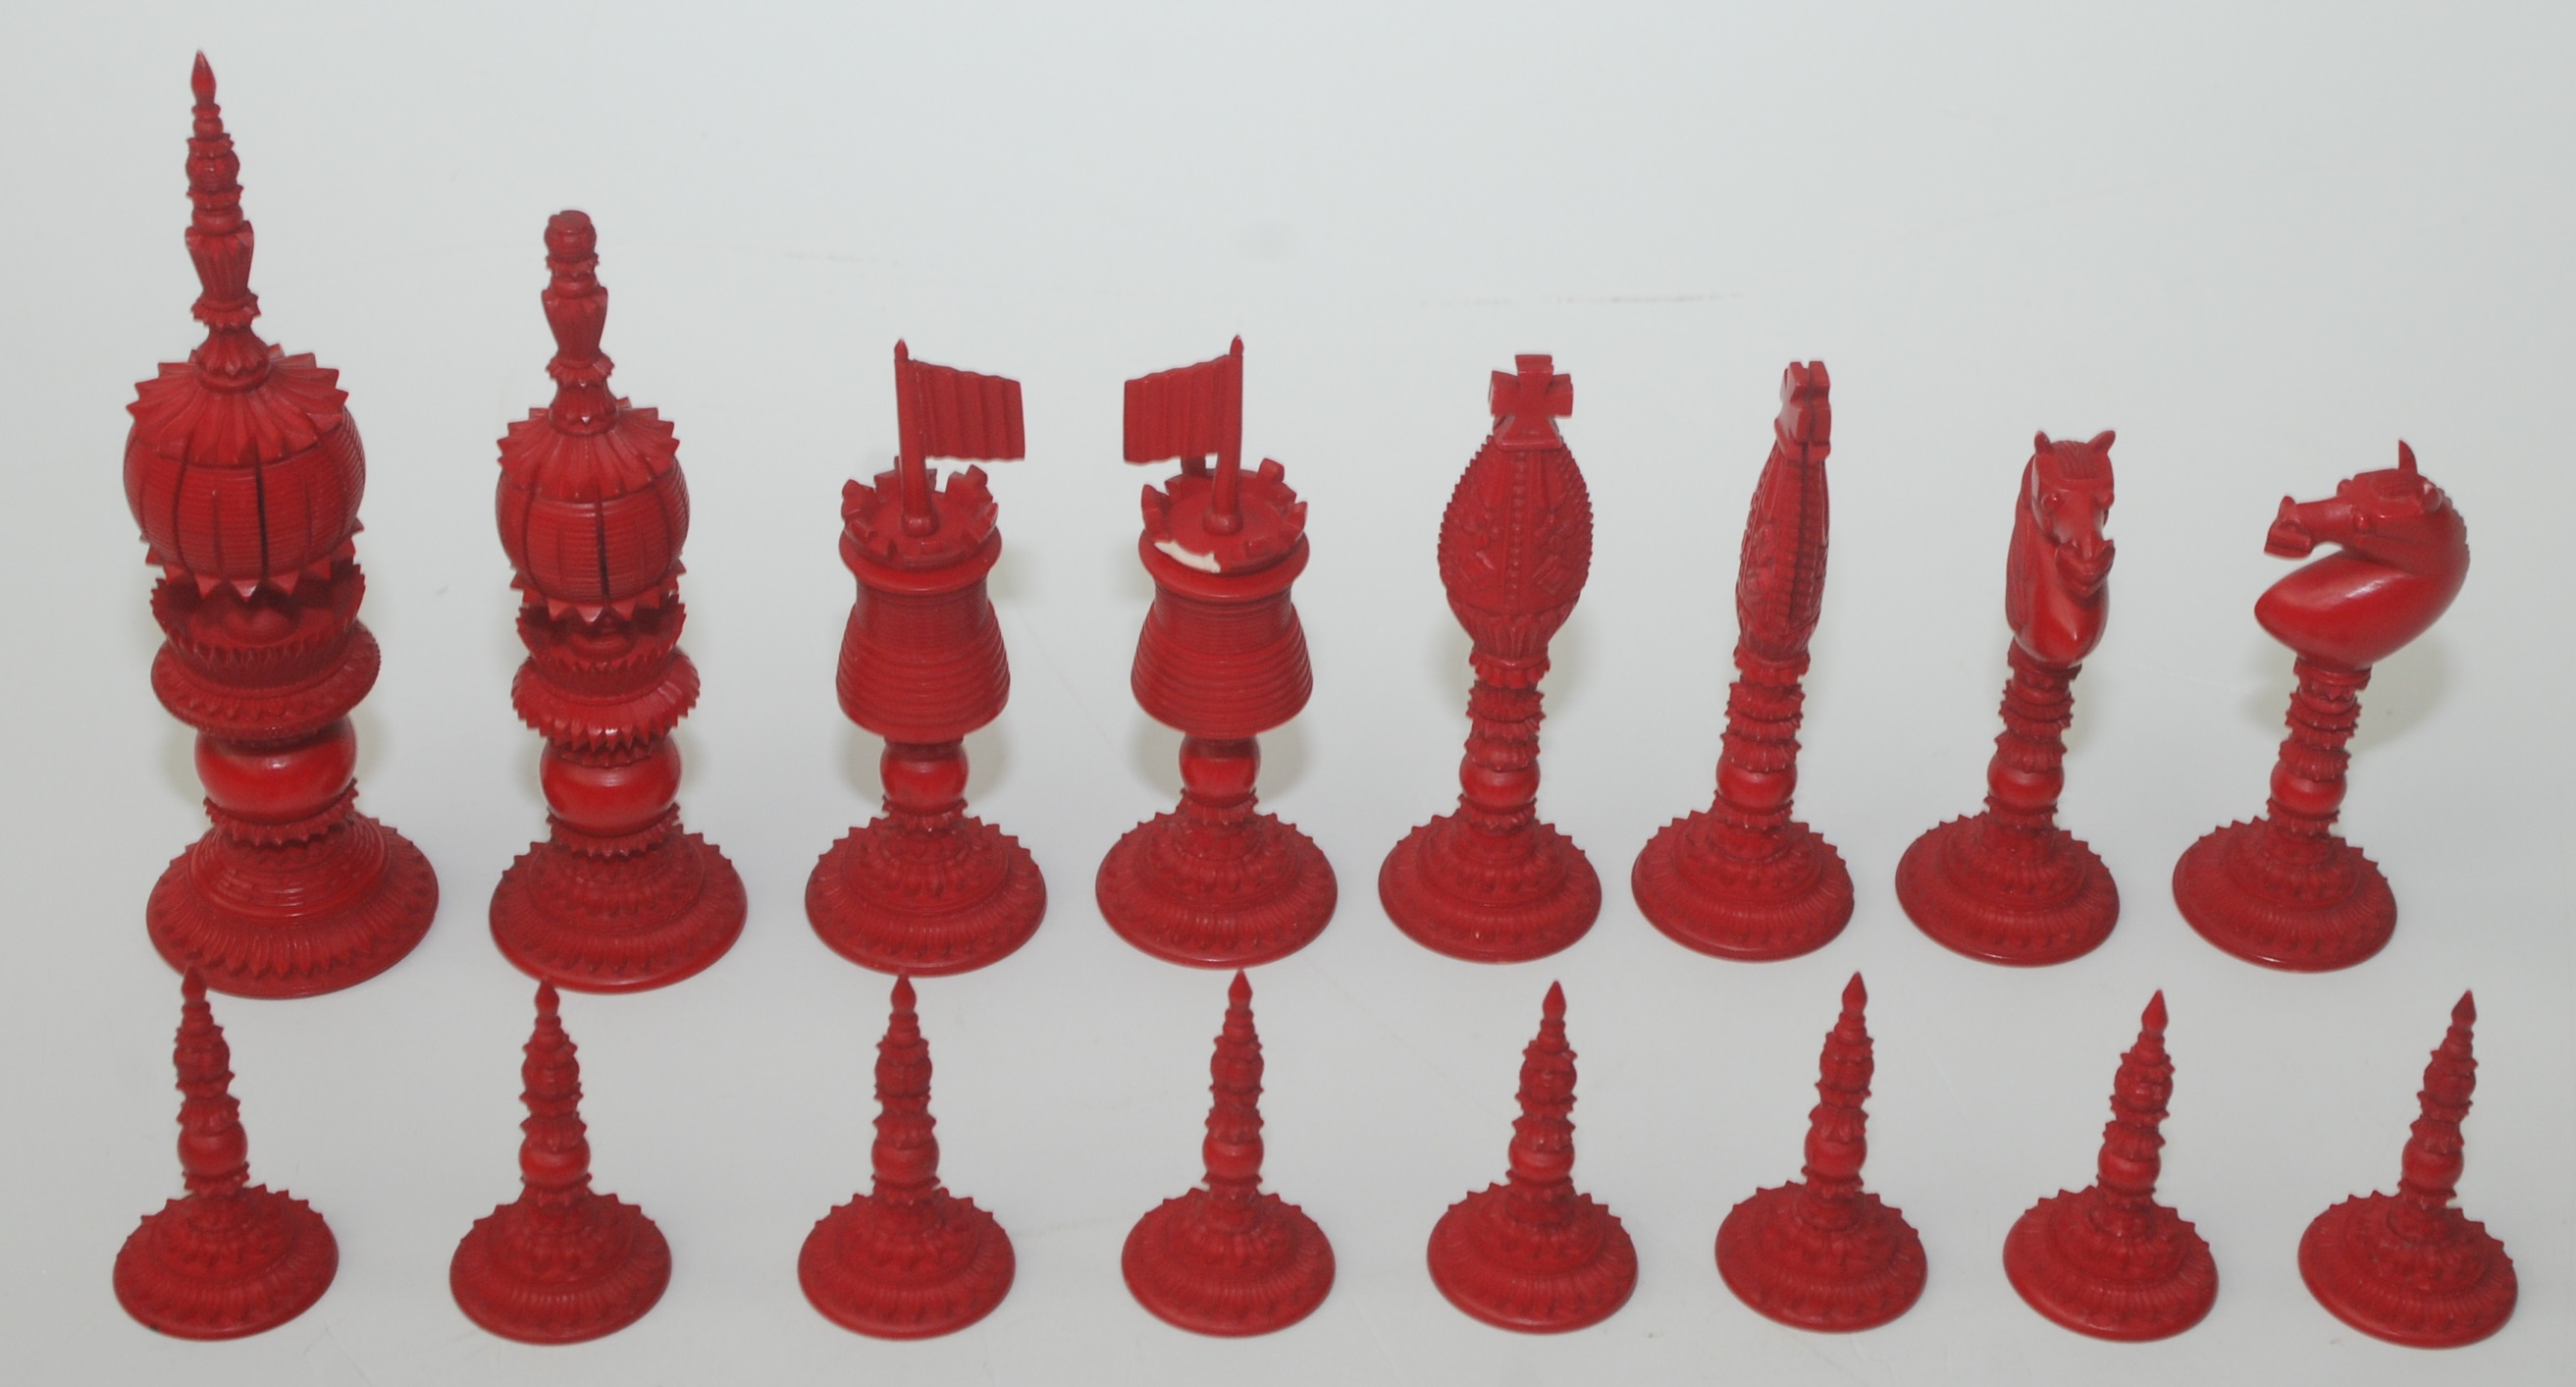 Lot 34A - A fine 19th century English ivory chess set of John Barleycorn type, natural and stained red,